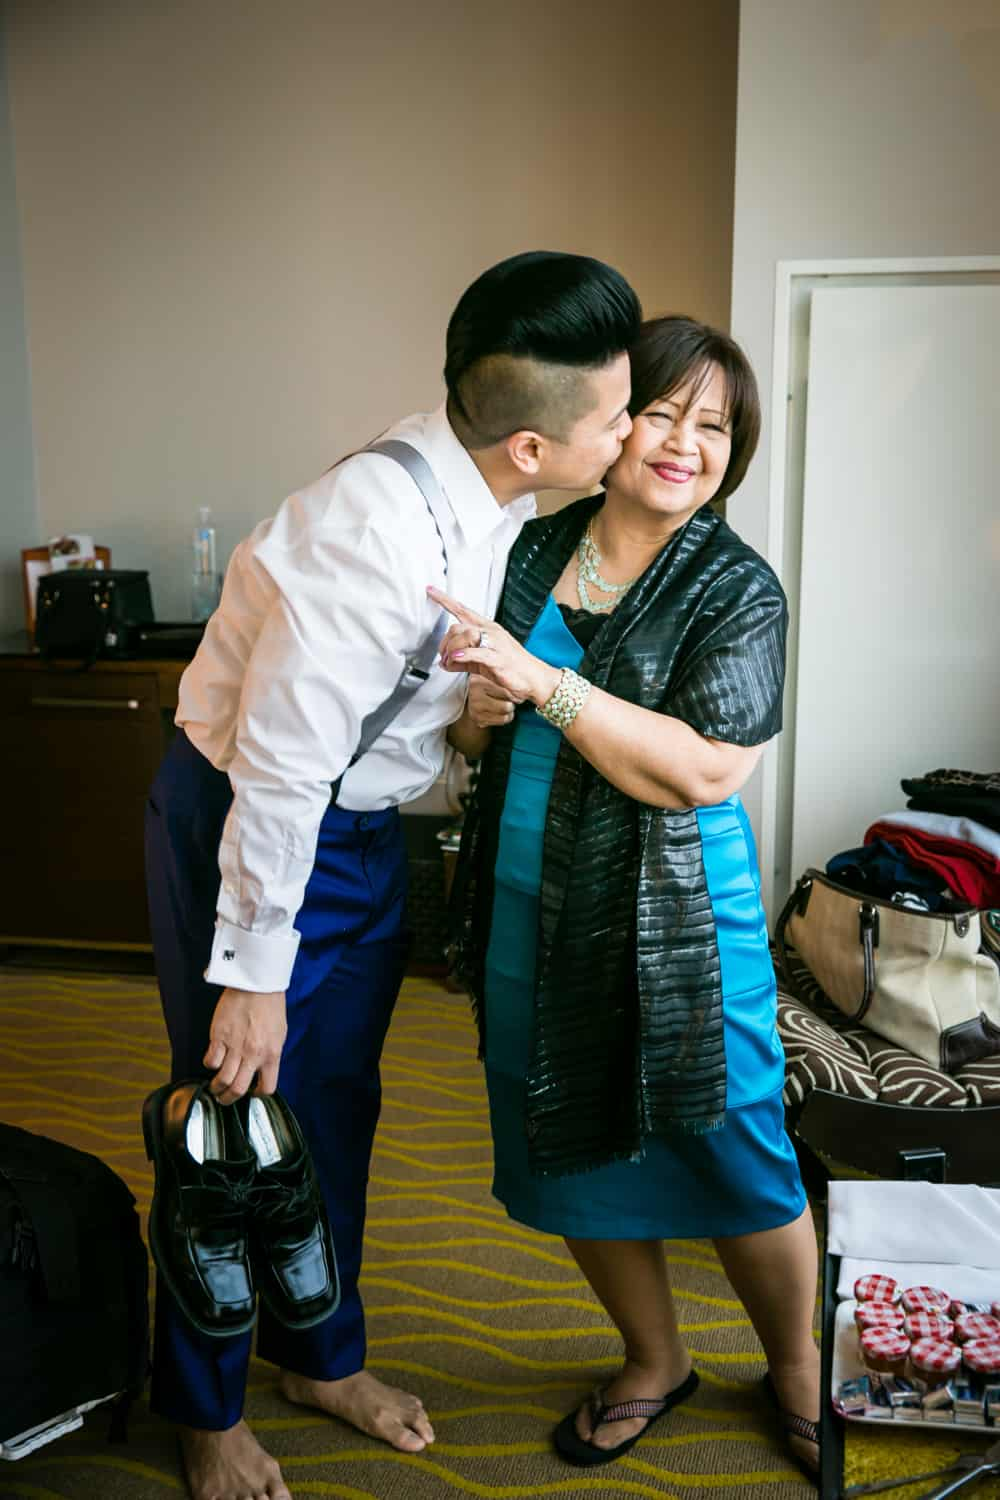 Groom kissing mother on the cheek and holding his shoes